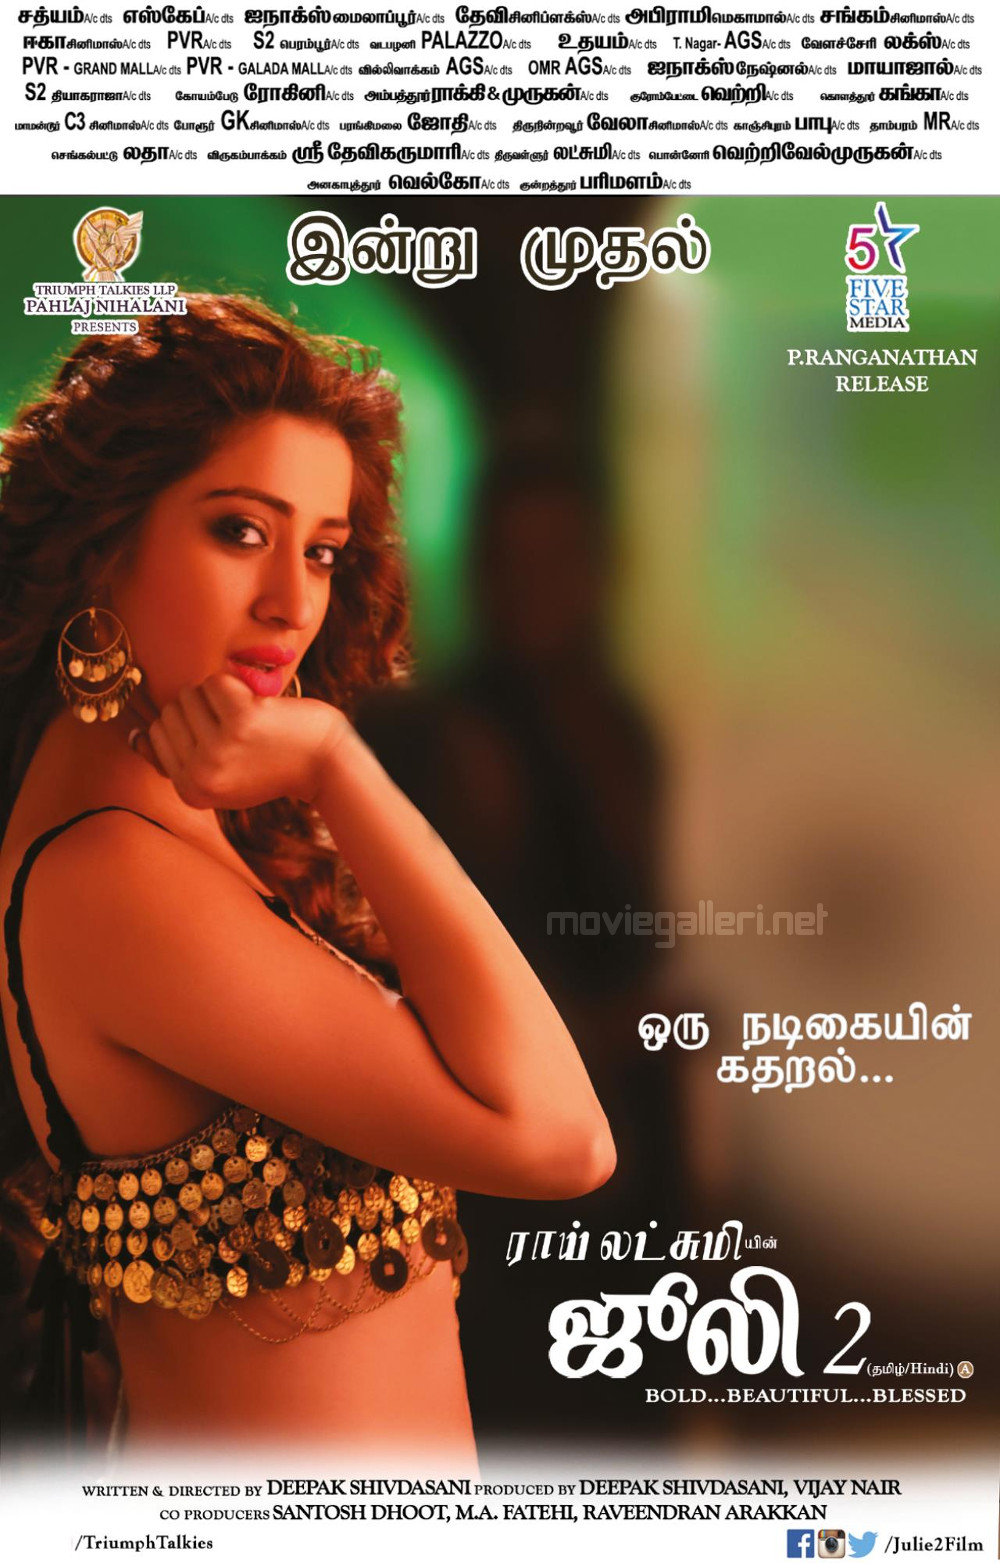 Actress Raai Laxmi Julie 2 Movie Release Today Posters